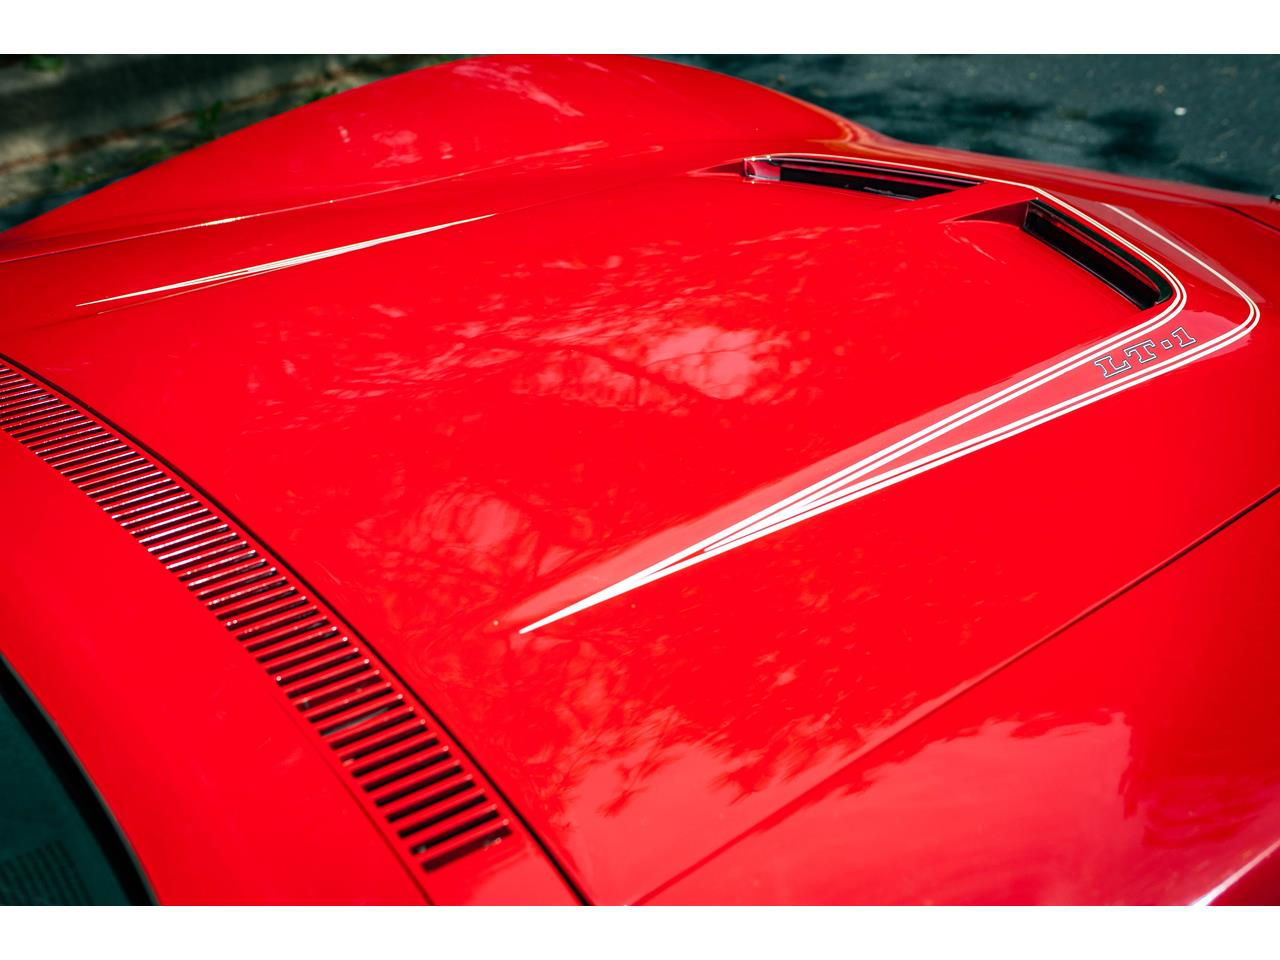 Large Picture of Classic 1971 Corvette located in O'Fallon Illinois Offered by Gateway Classic Cars - St. Louis - QB9M